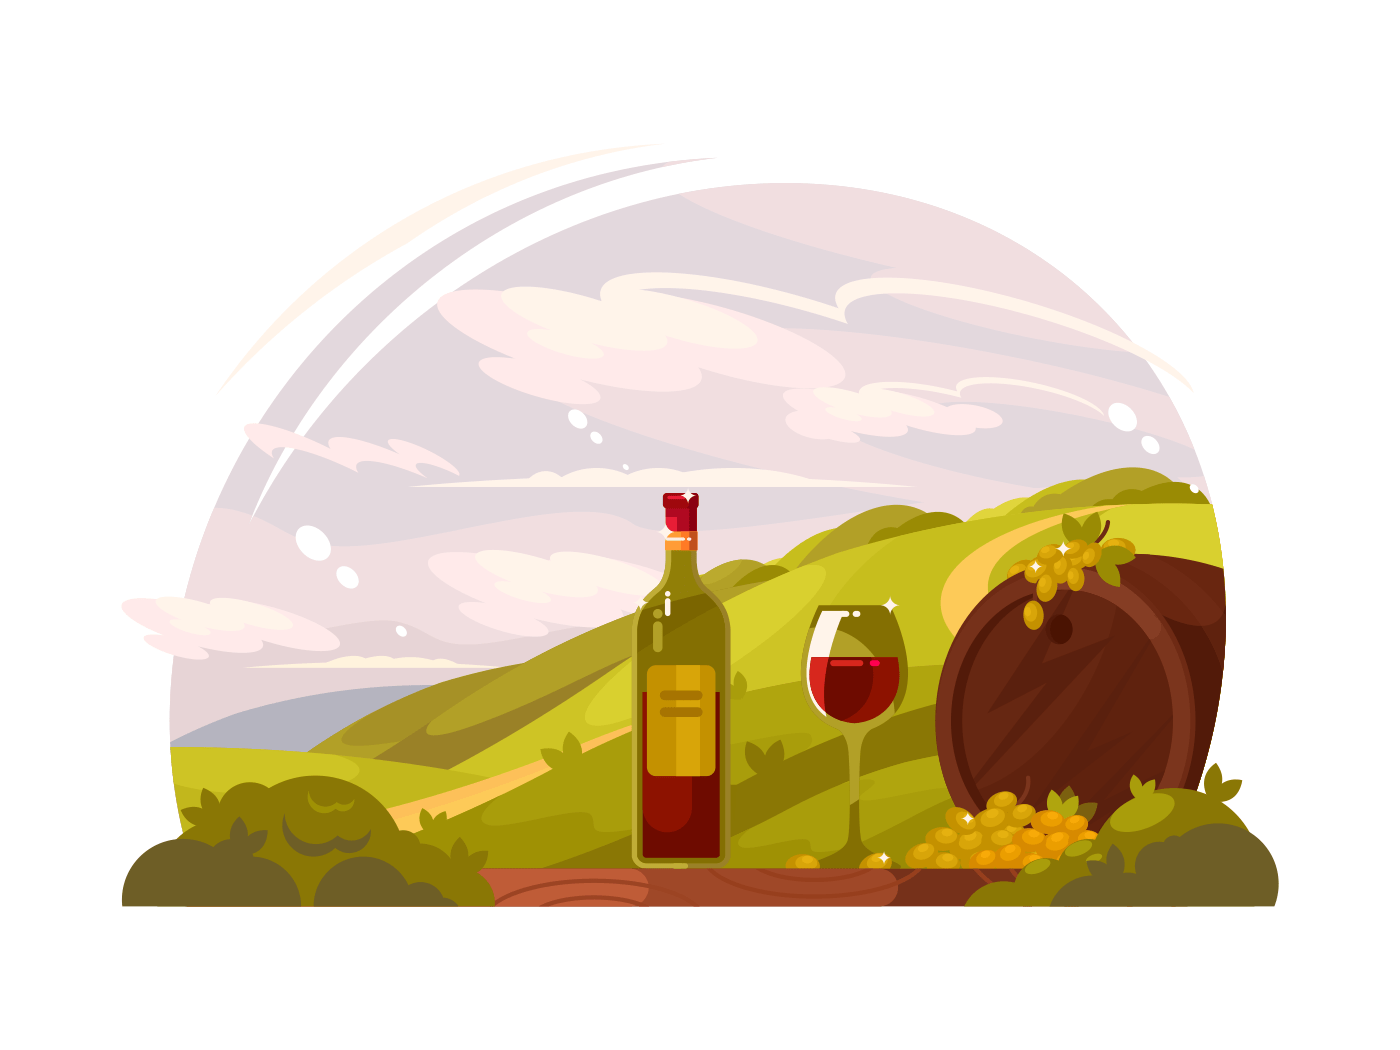 Vineyard with rich harvest illustration